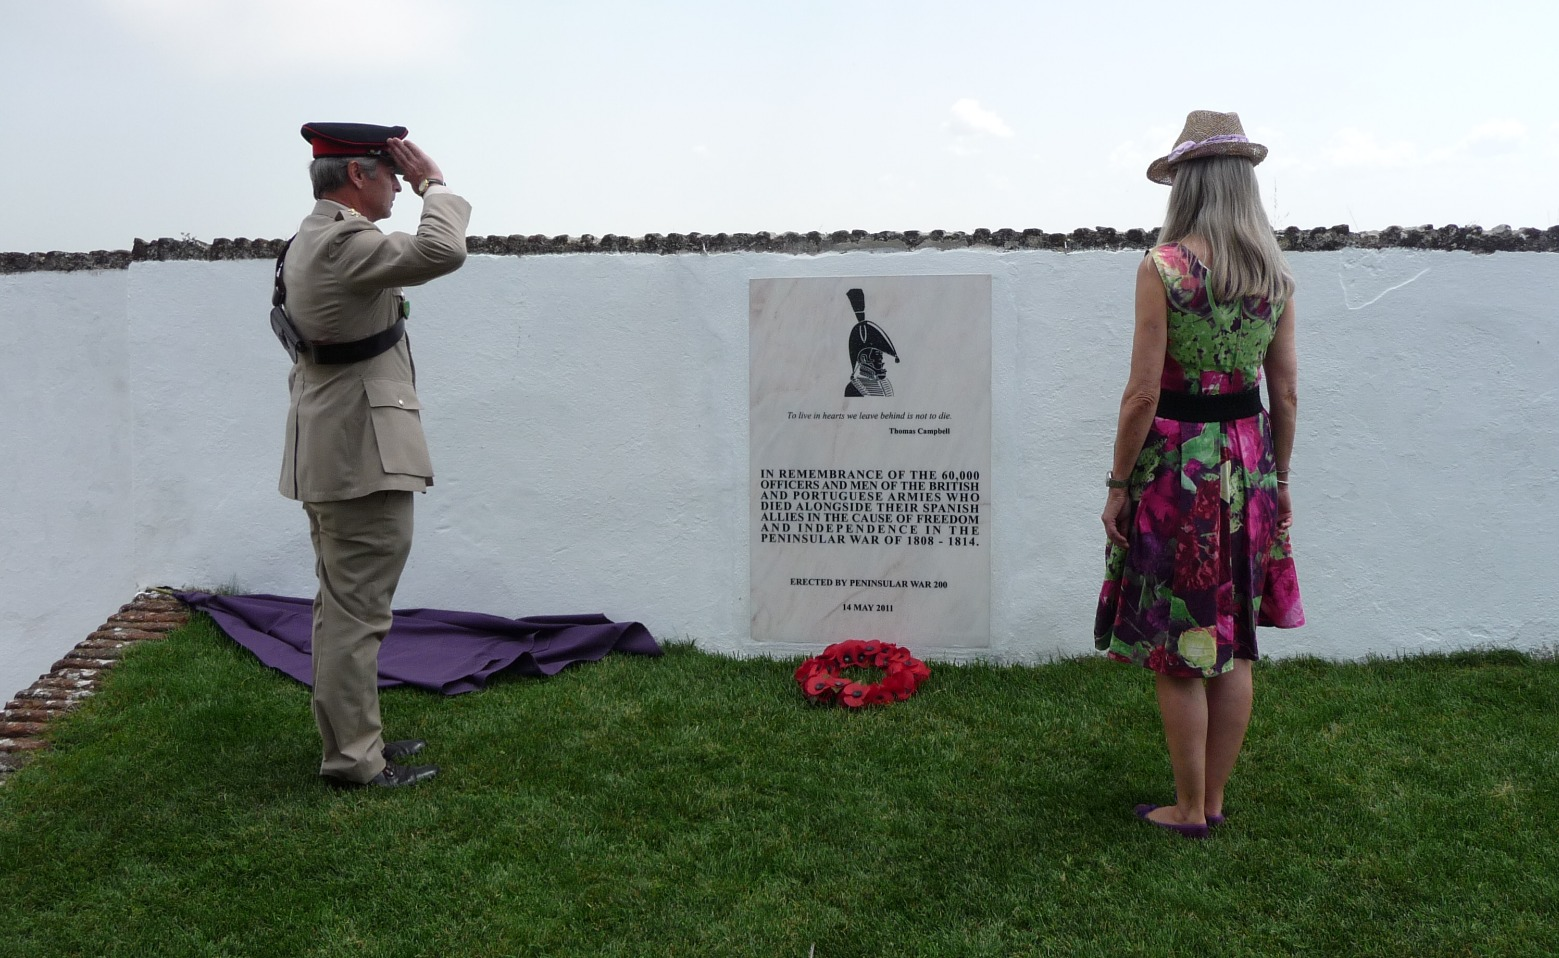 Lady Jane Wellesley and Col. Nick Lipscombe, Dedication of Peninsular War 200 plaque